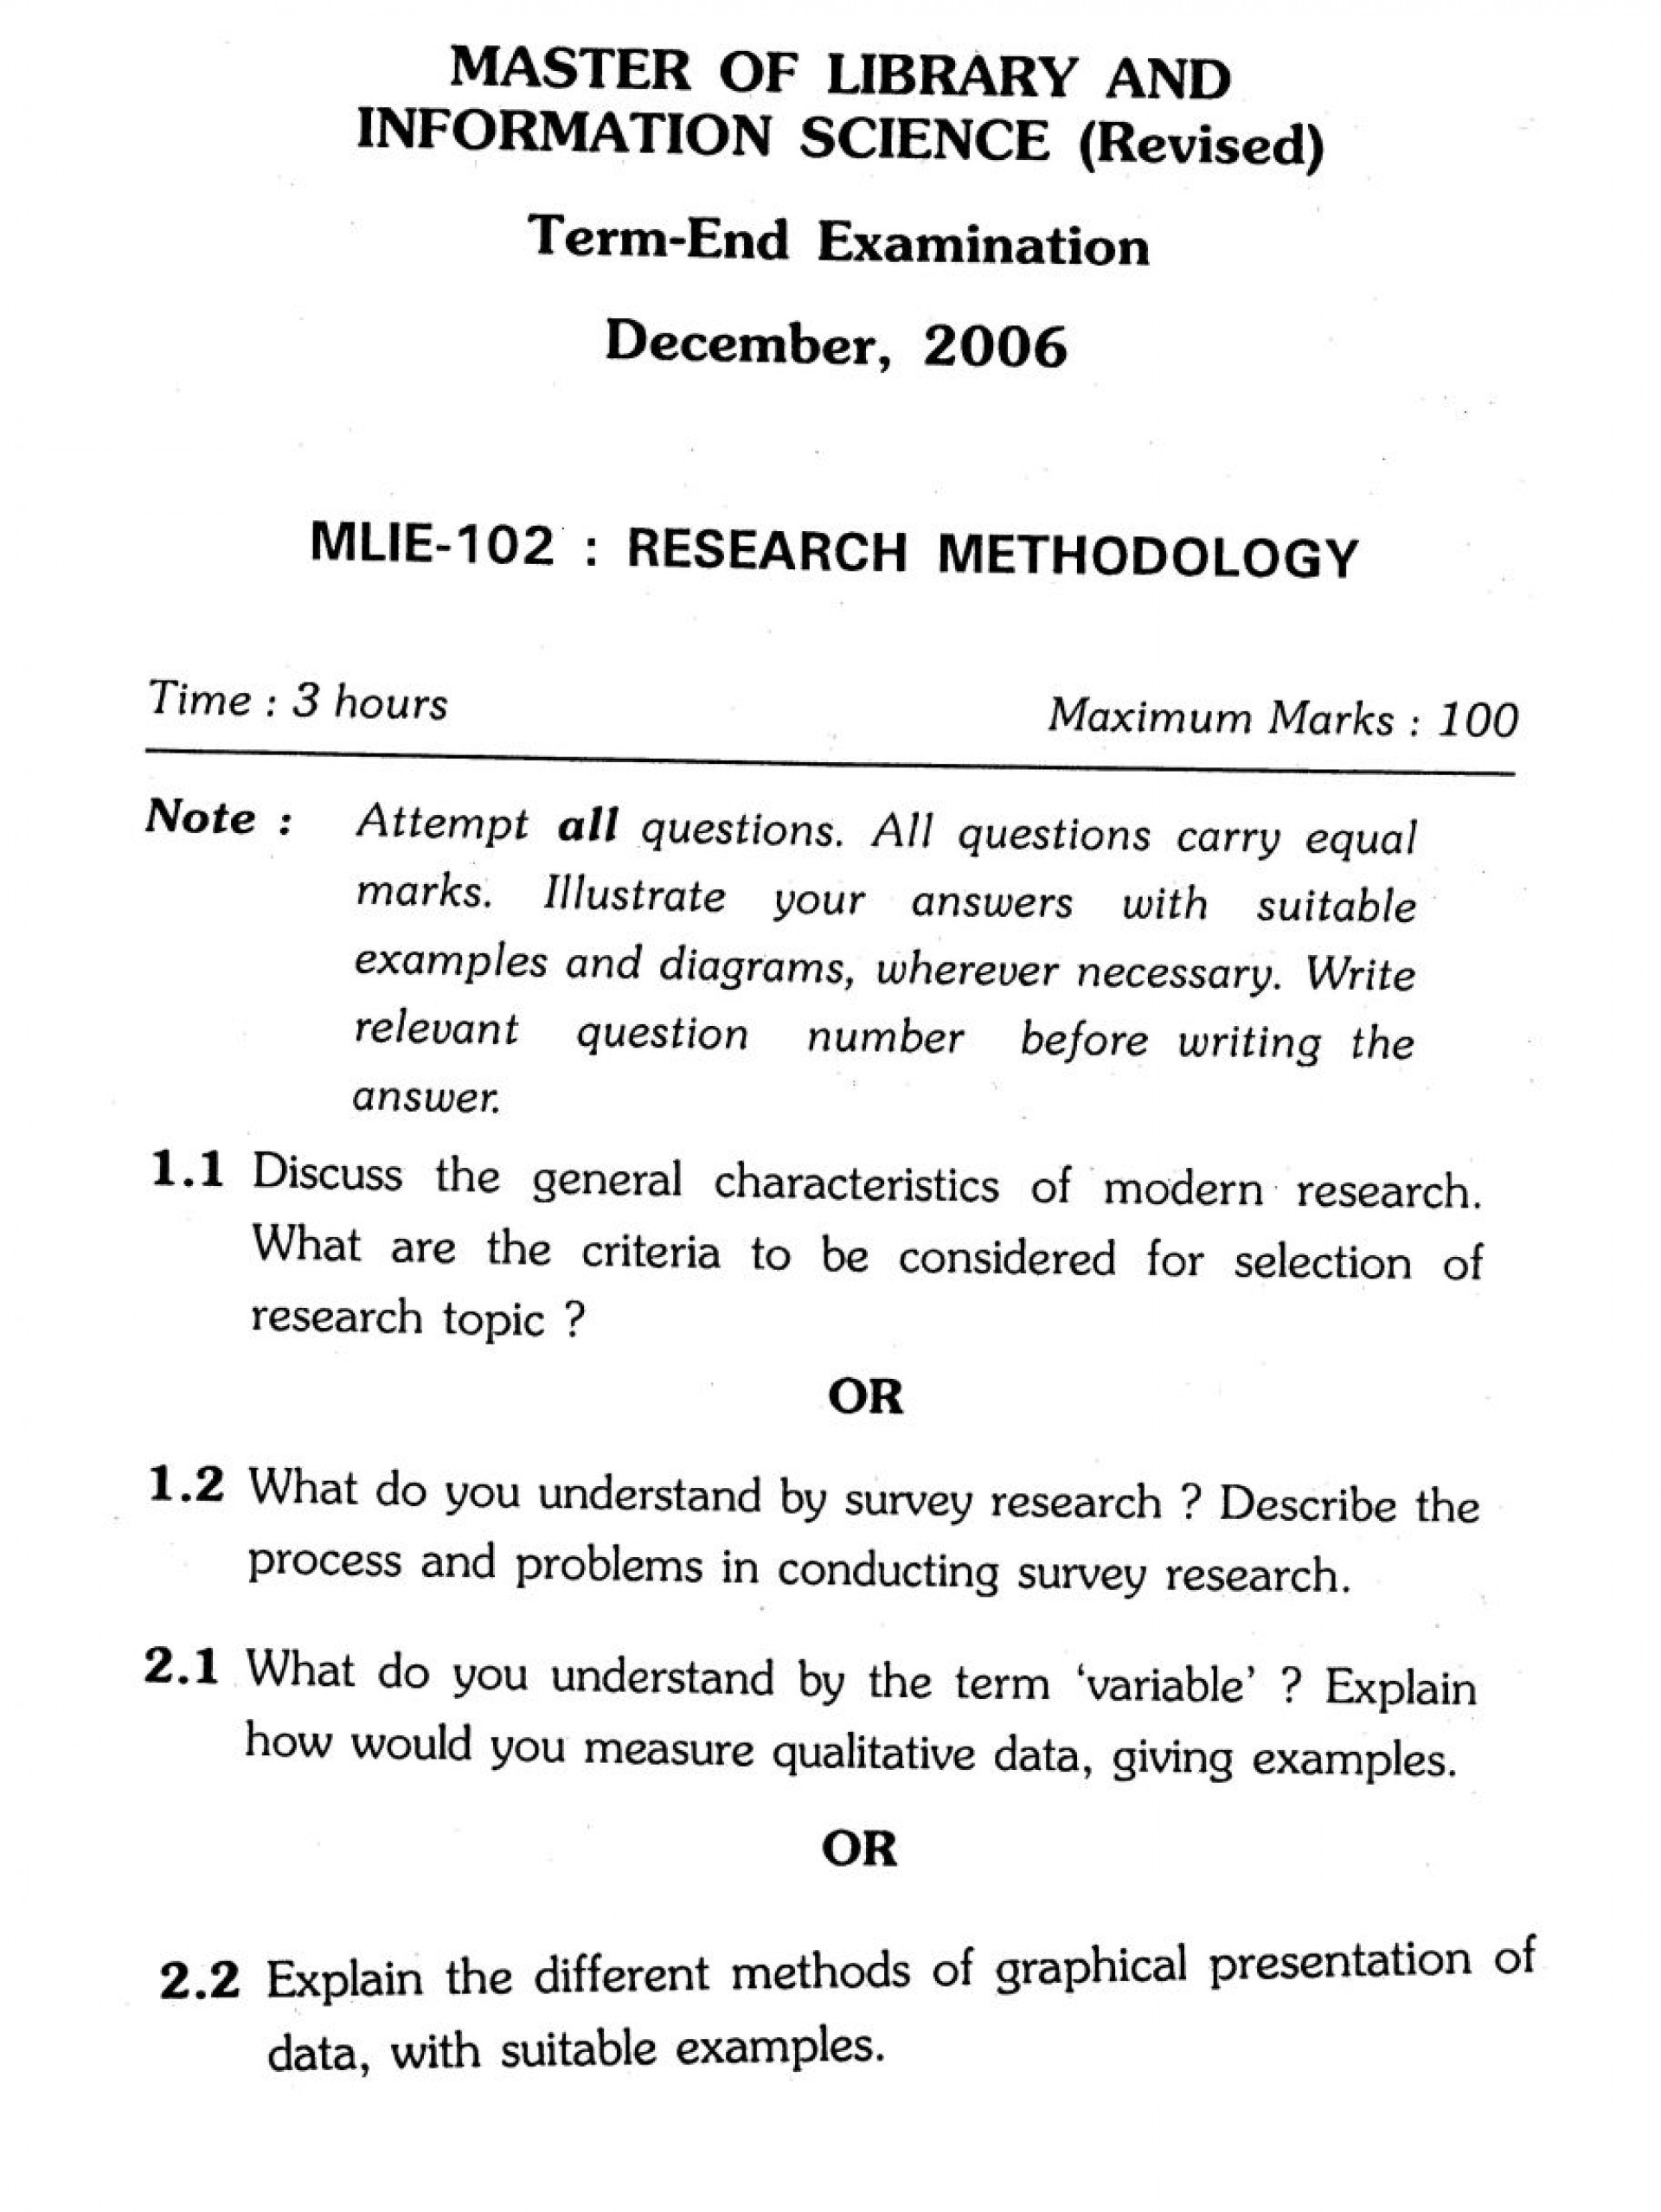 013 Ignou Master Of Library And Information Science Research Methodology Previous Years Question Papers Paper In Imposing Example Engineering Section Qualitative 1920